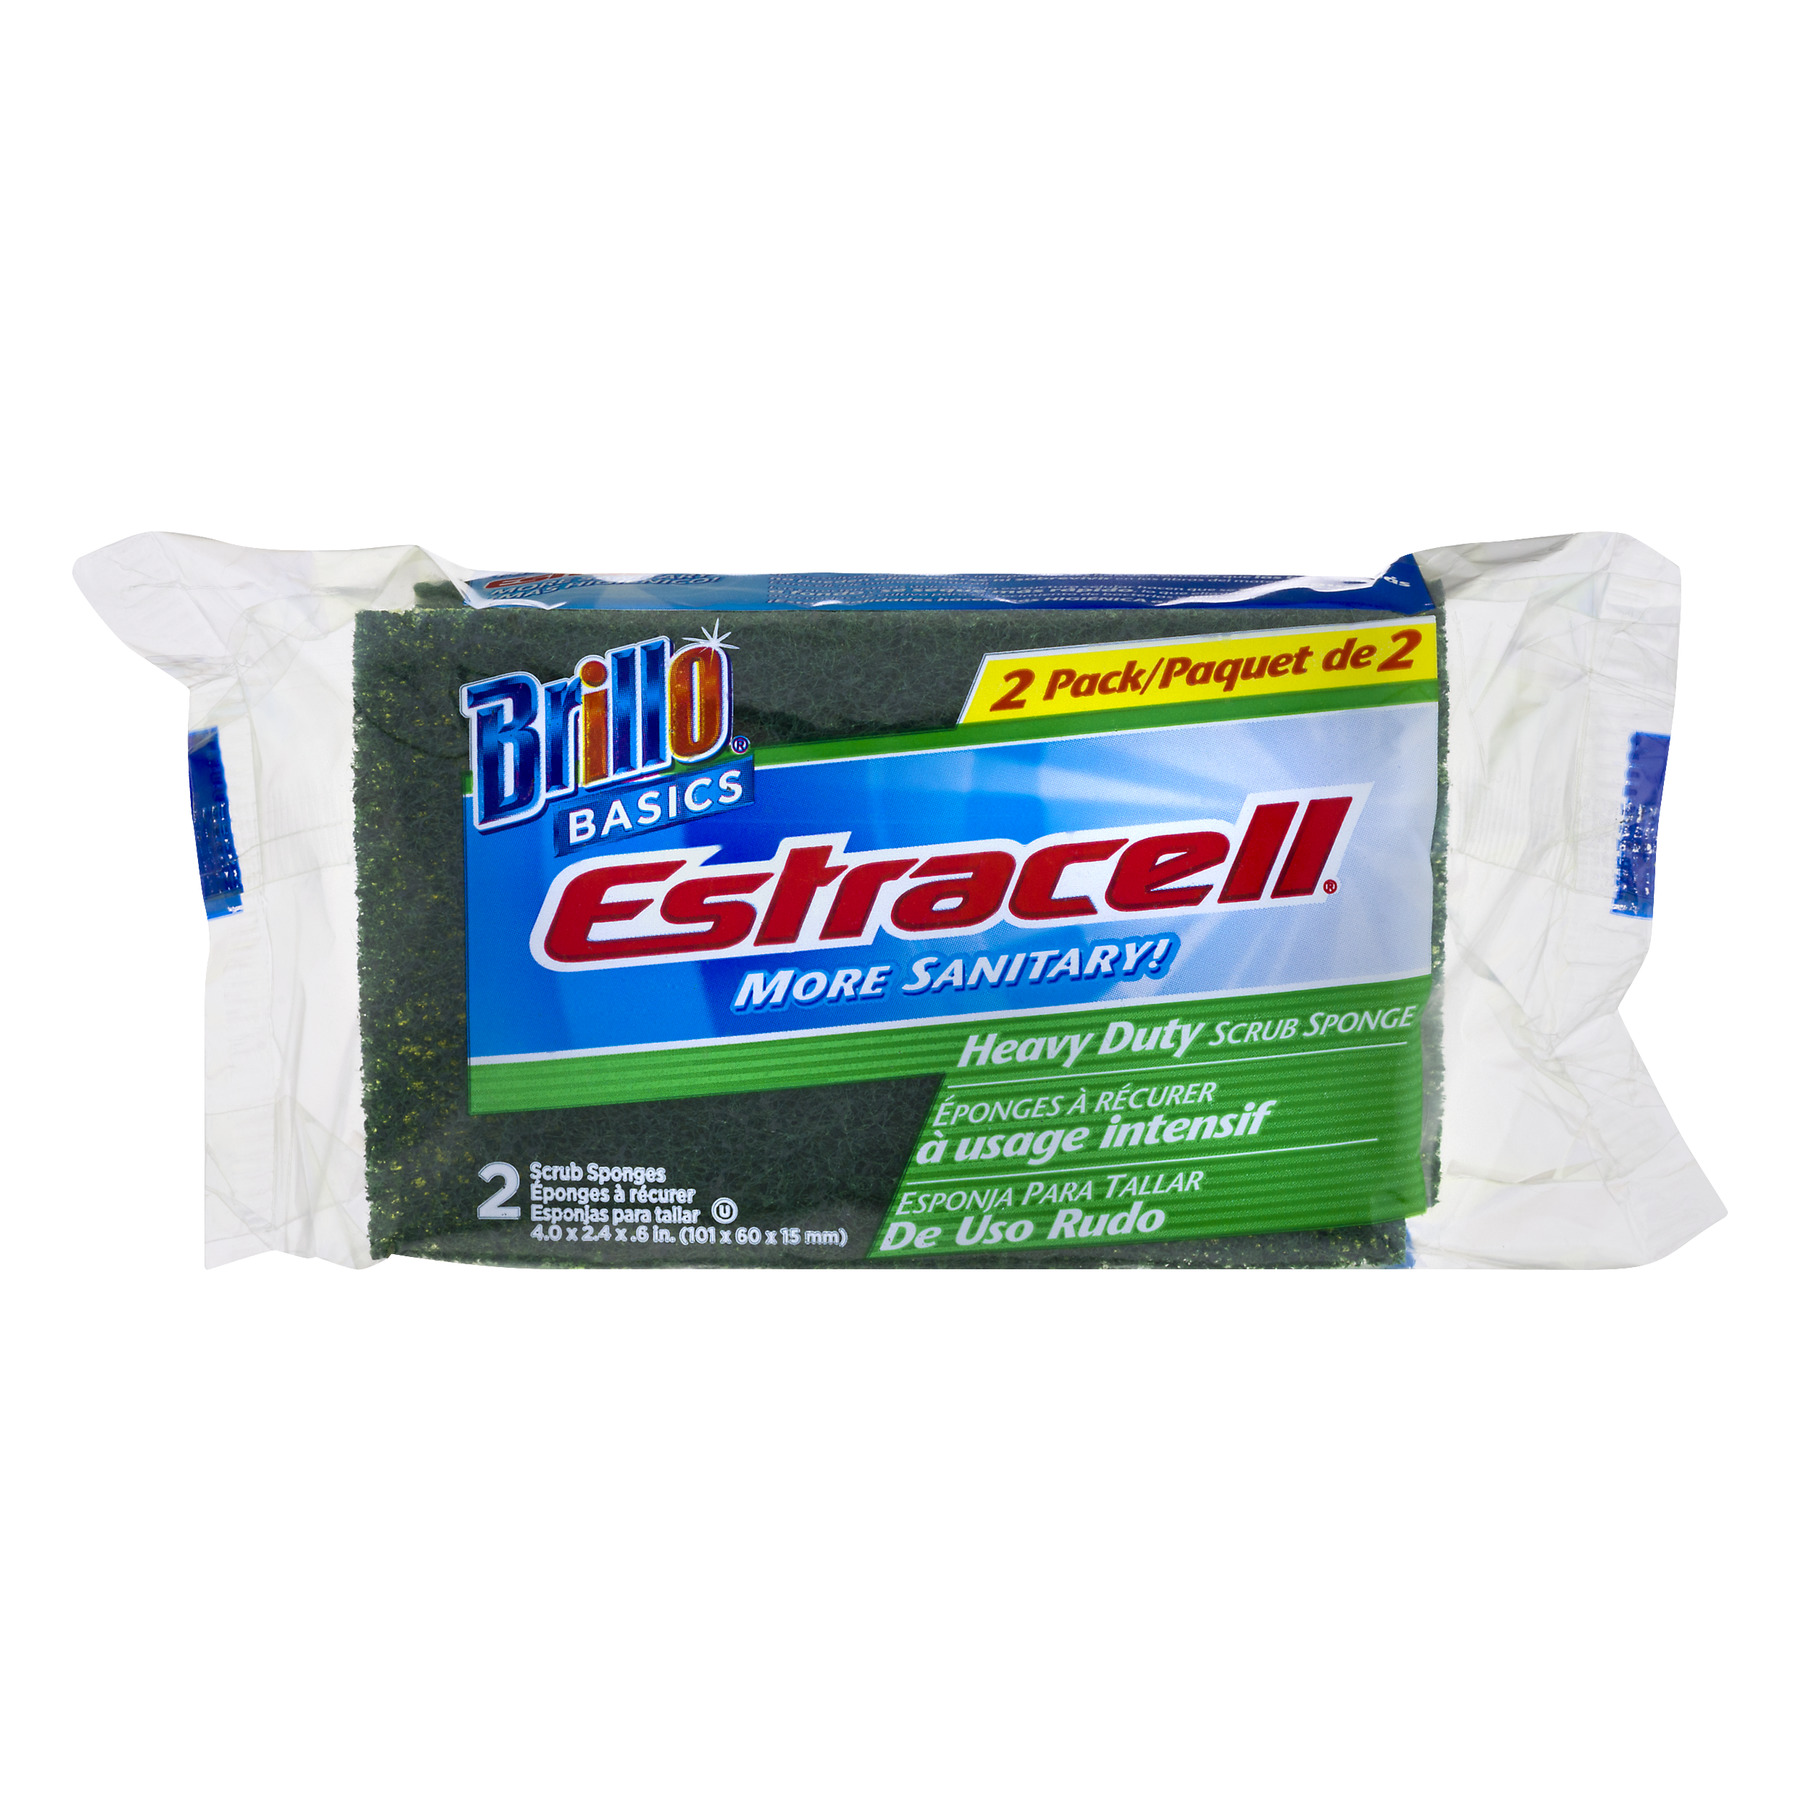 Brillo Estracell Heavy Duty Scrub Sponges, 2 count